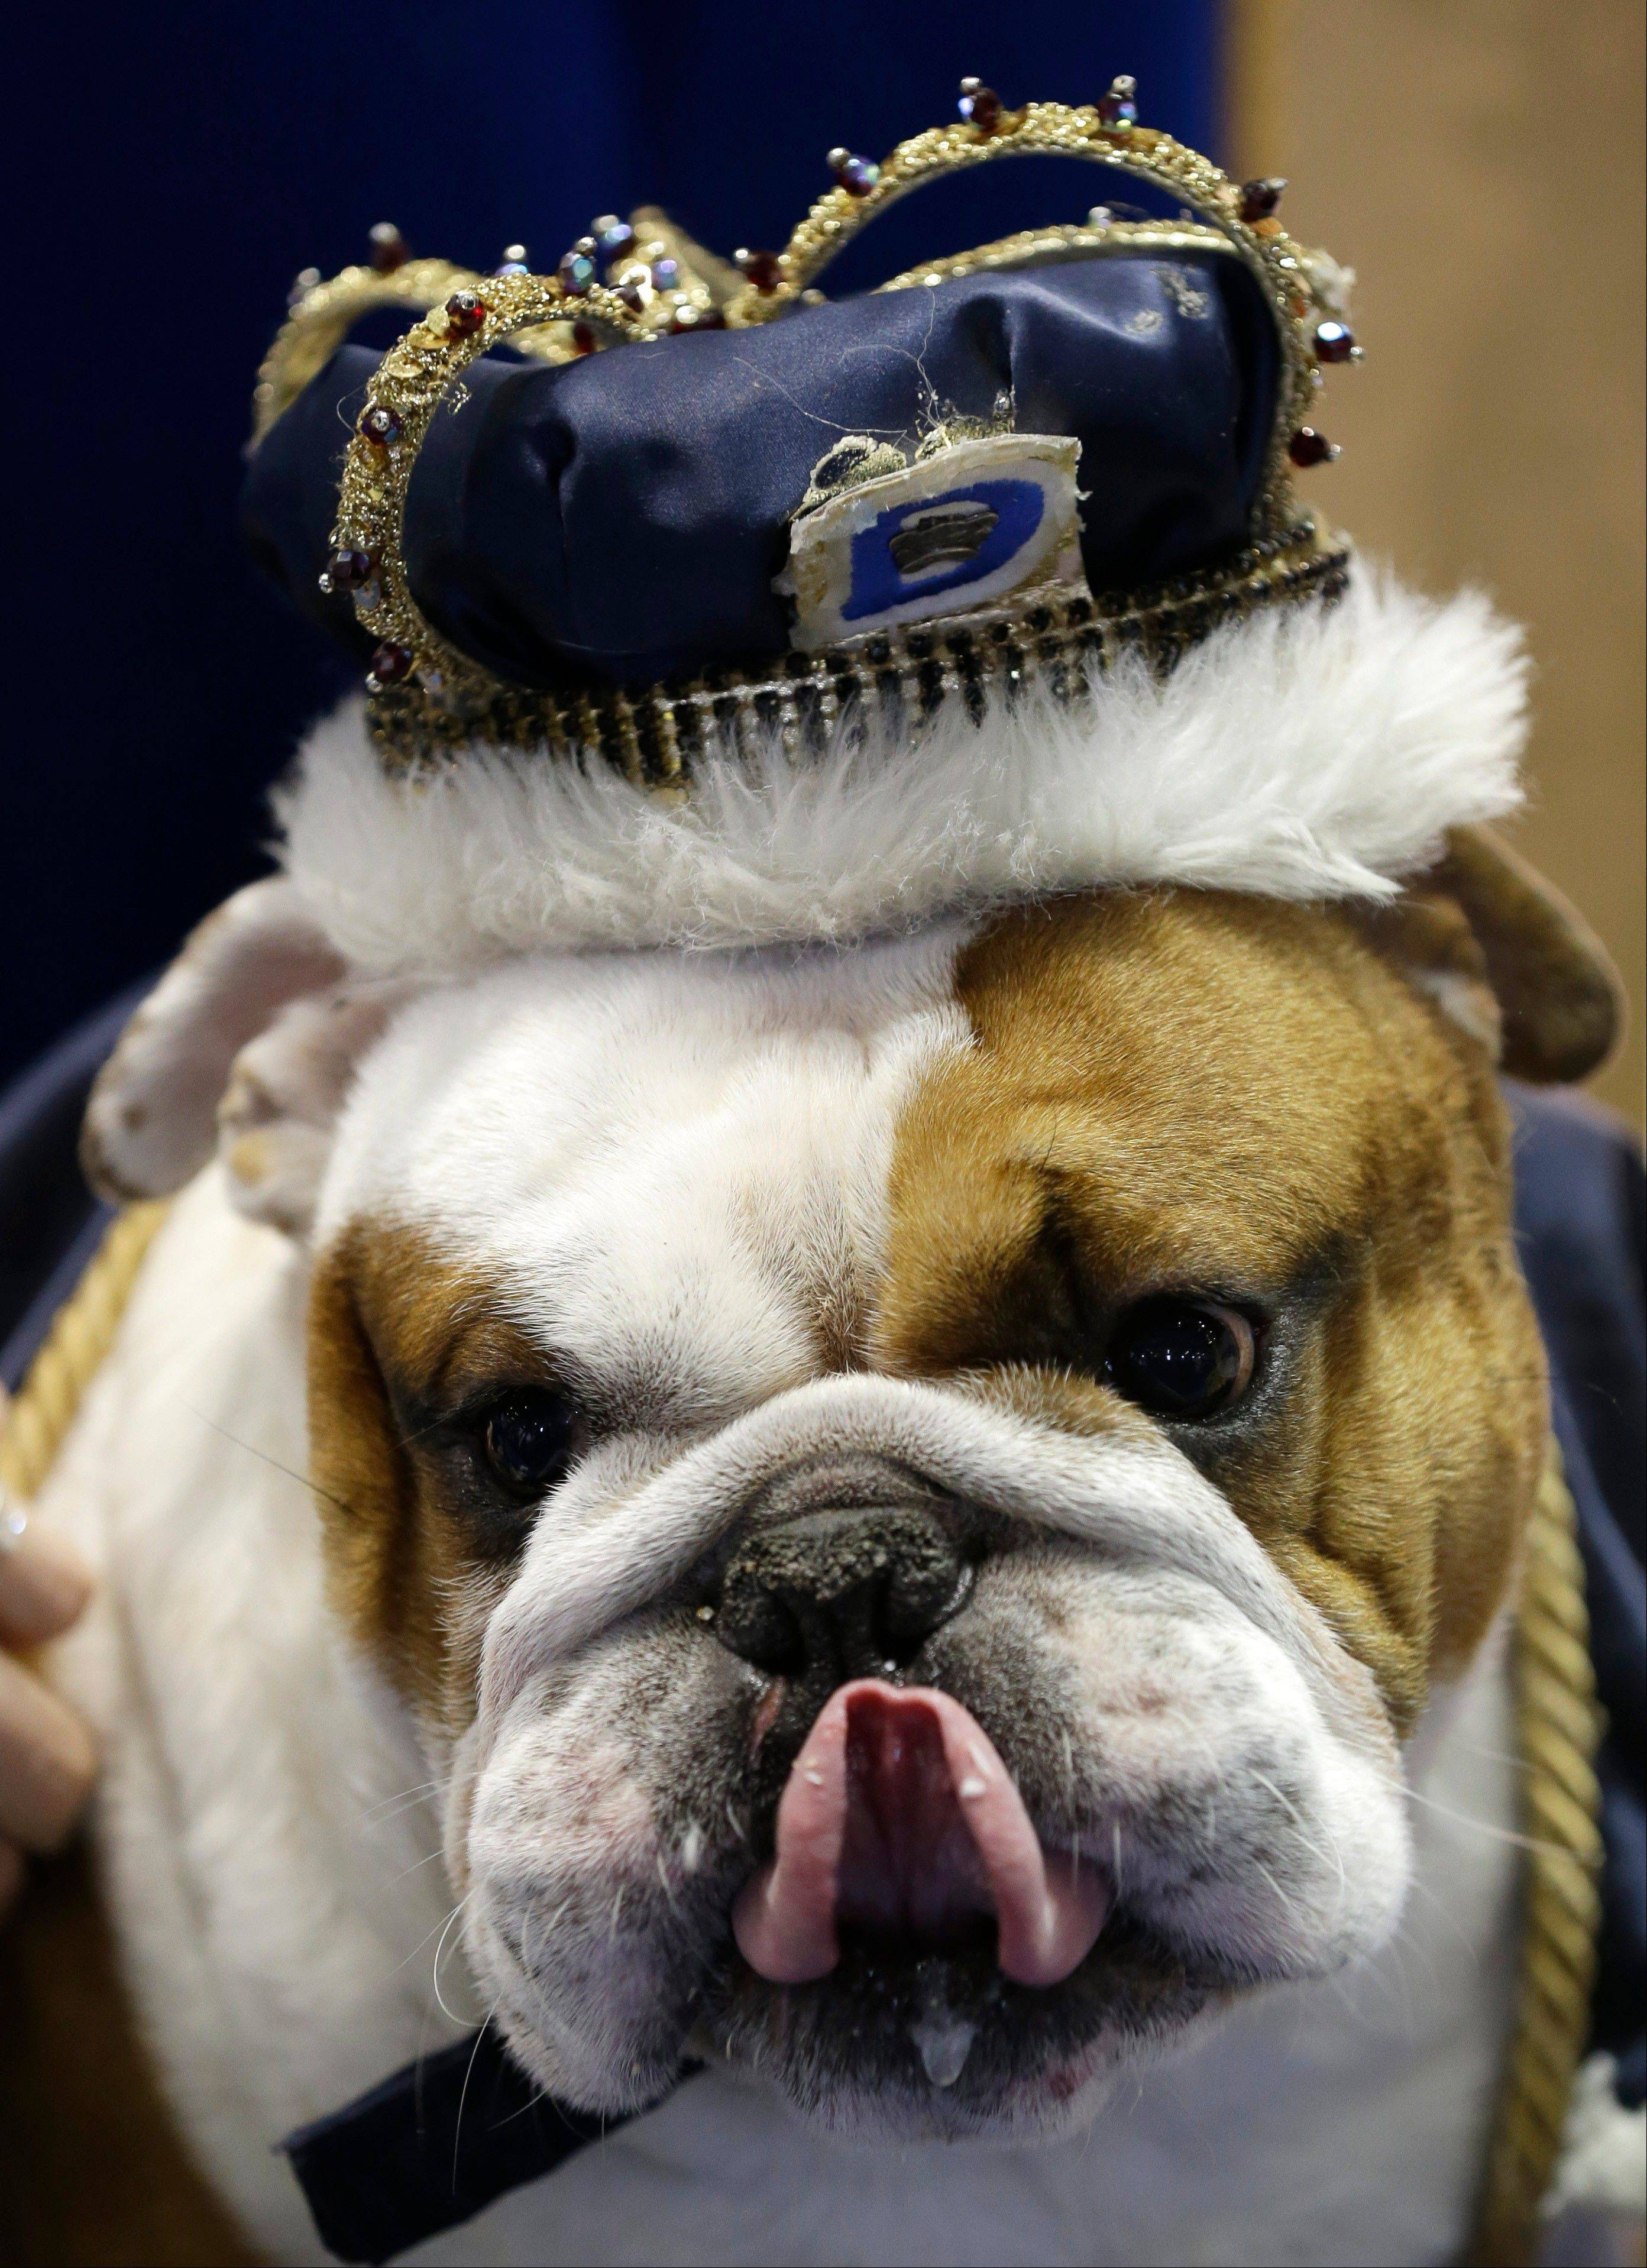 Huckleberry sits on the throne after being crowned the winner of the 34th annual Drake Relays Beautiful Bulldog Contest, Monday, April 22, 2013, in Des Moines, Iowa. The bulldog is owned by Steven and Stephanie Hein of Norwalk, Iowa. The pageant kicks off the Drake Relays festivities at Drake University where a bulldog is the mascot.